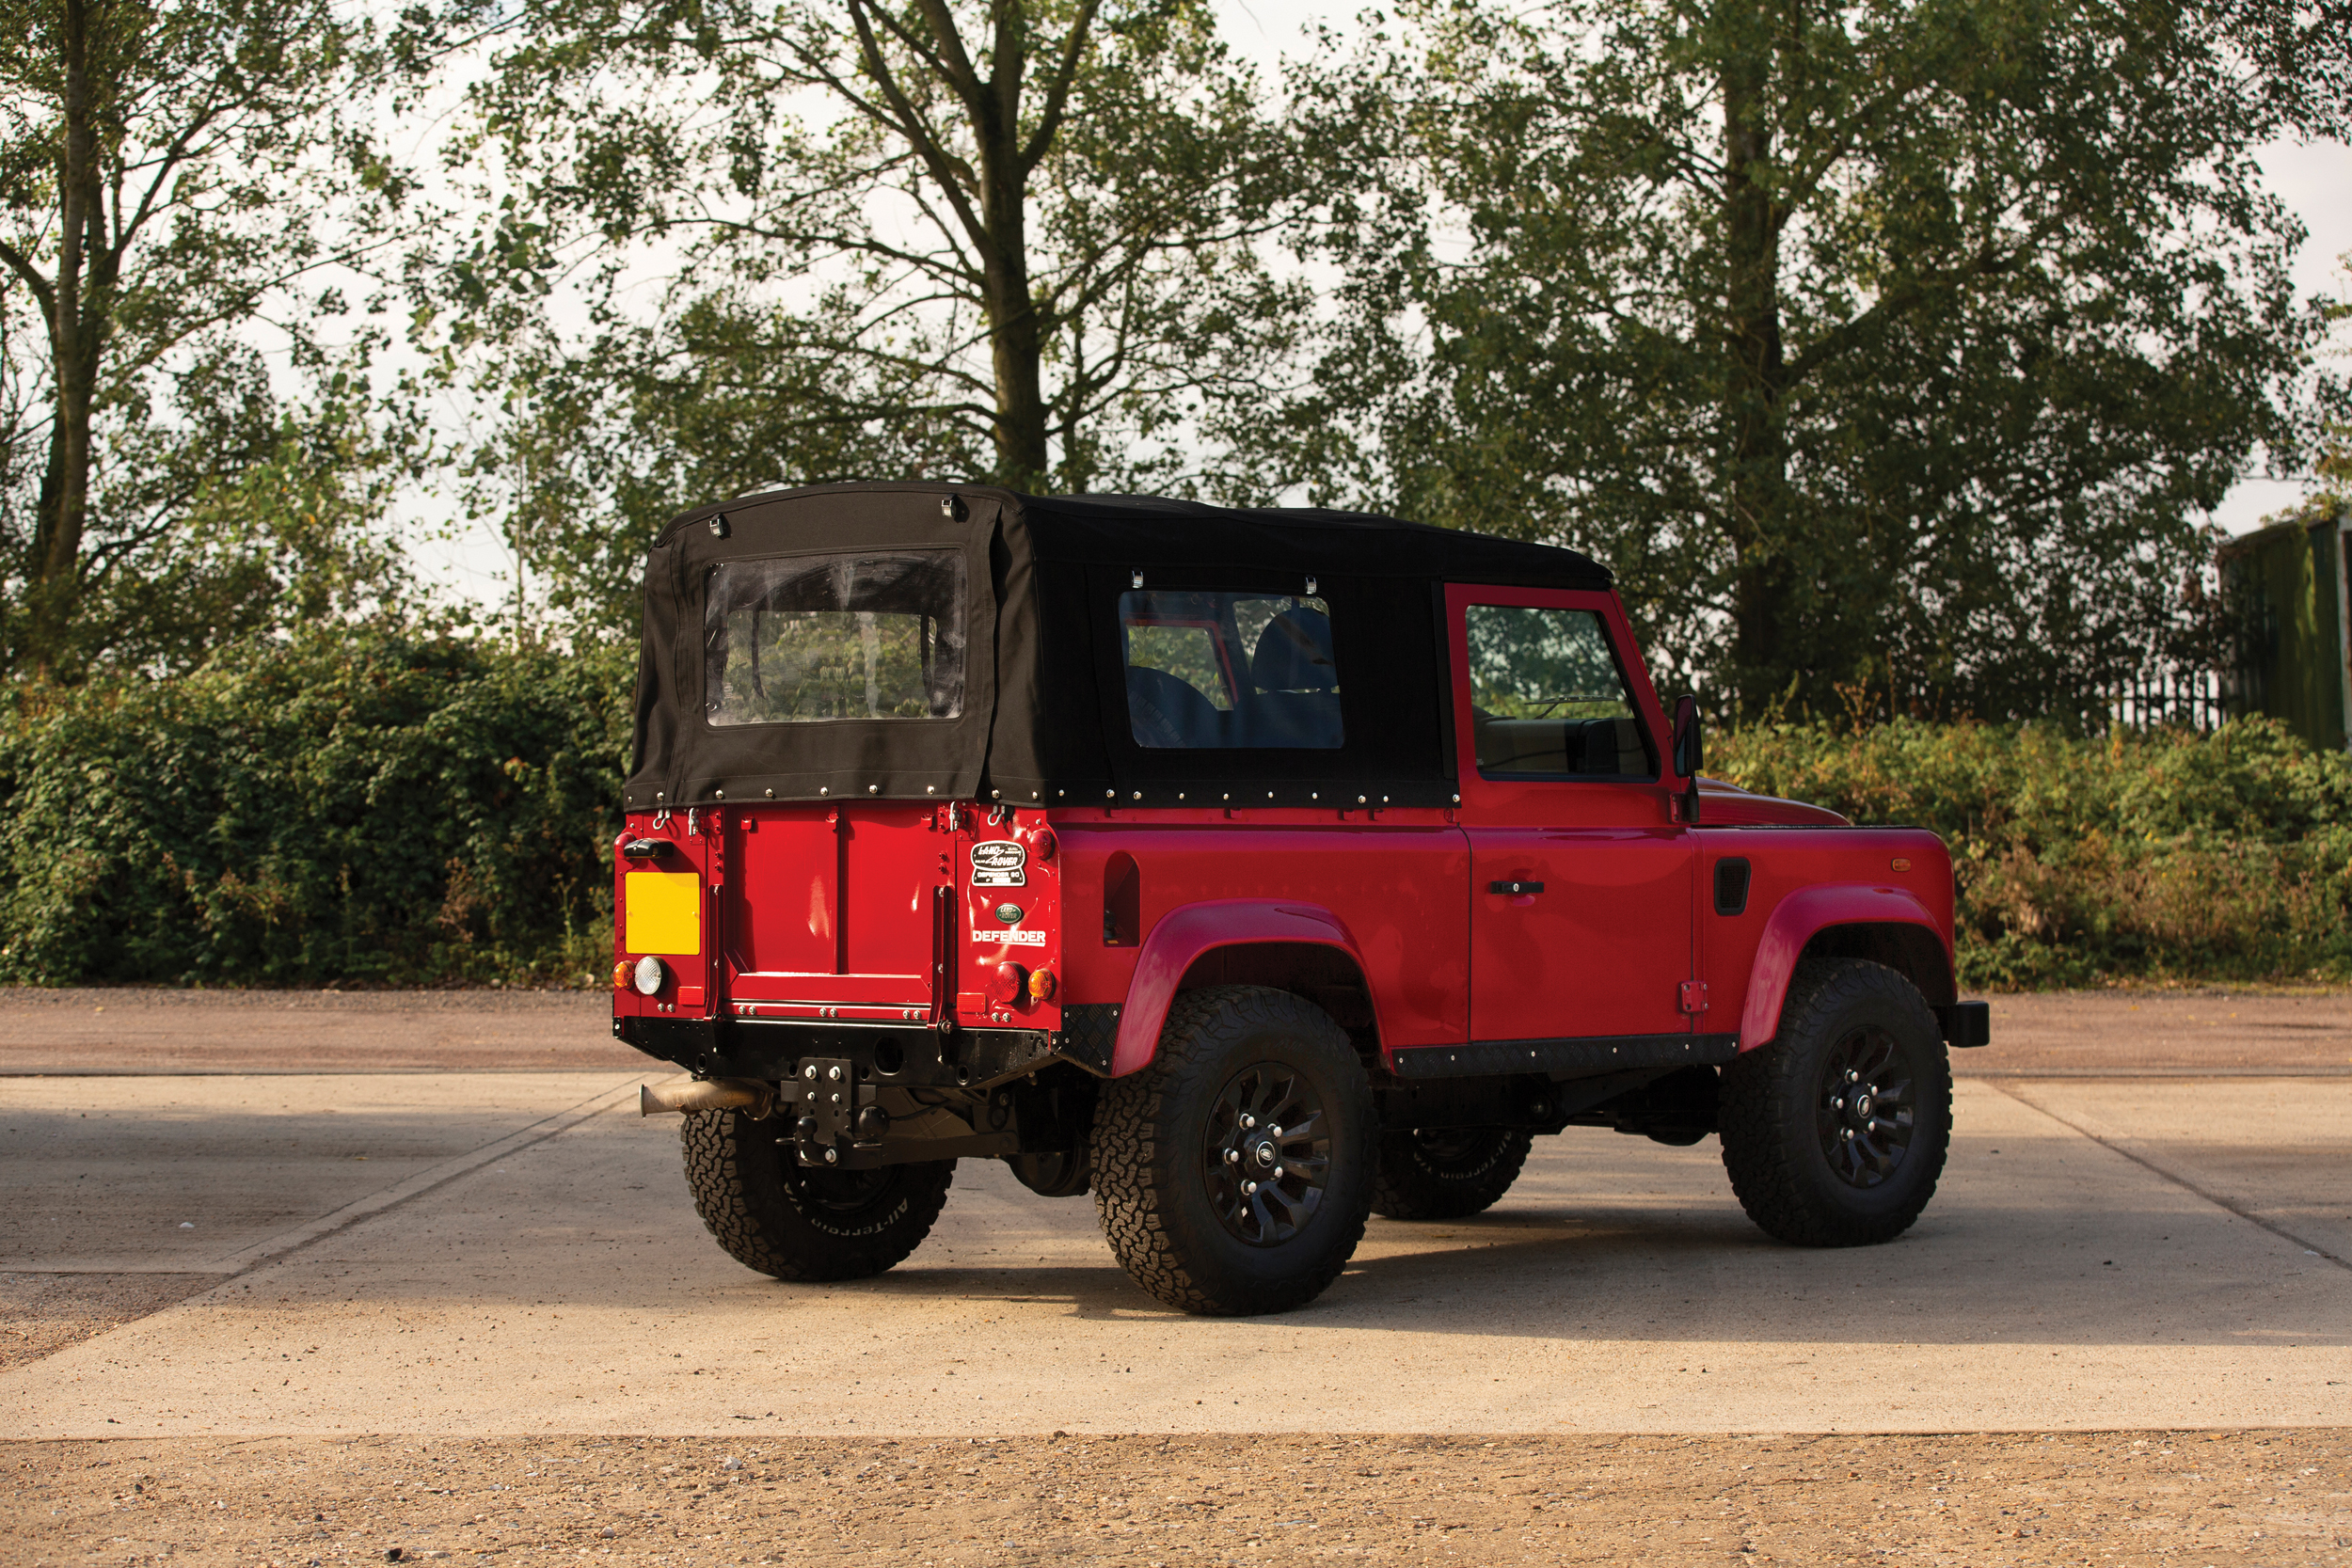 190928 2013 Land Rover Defender - RM Sothby's London Sale